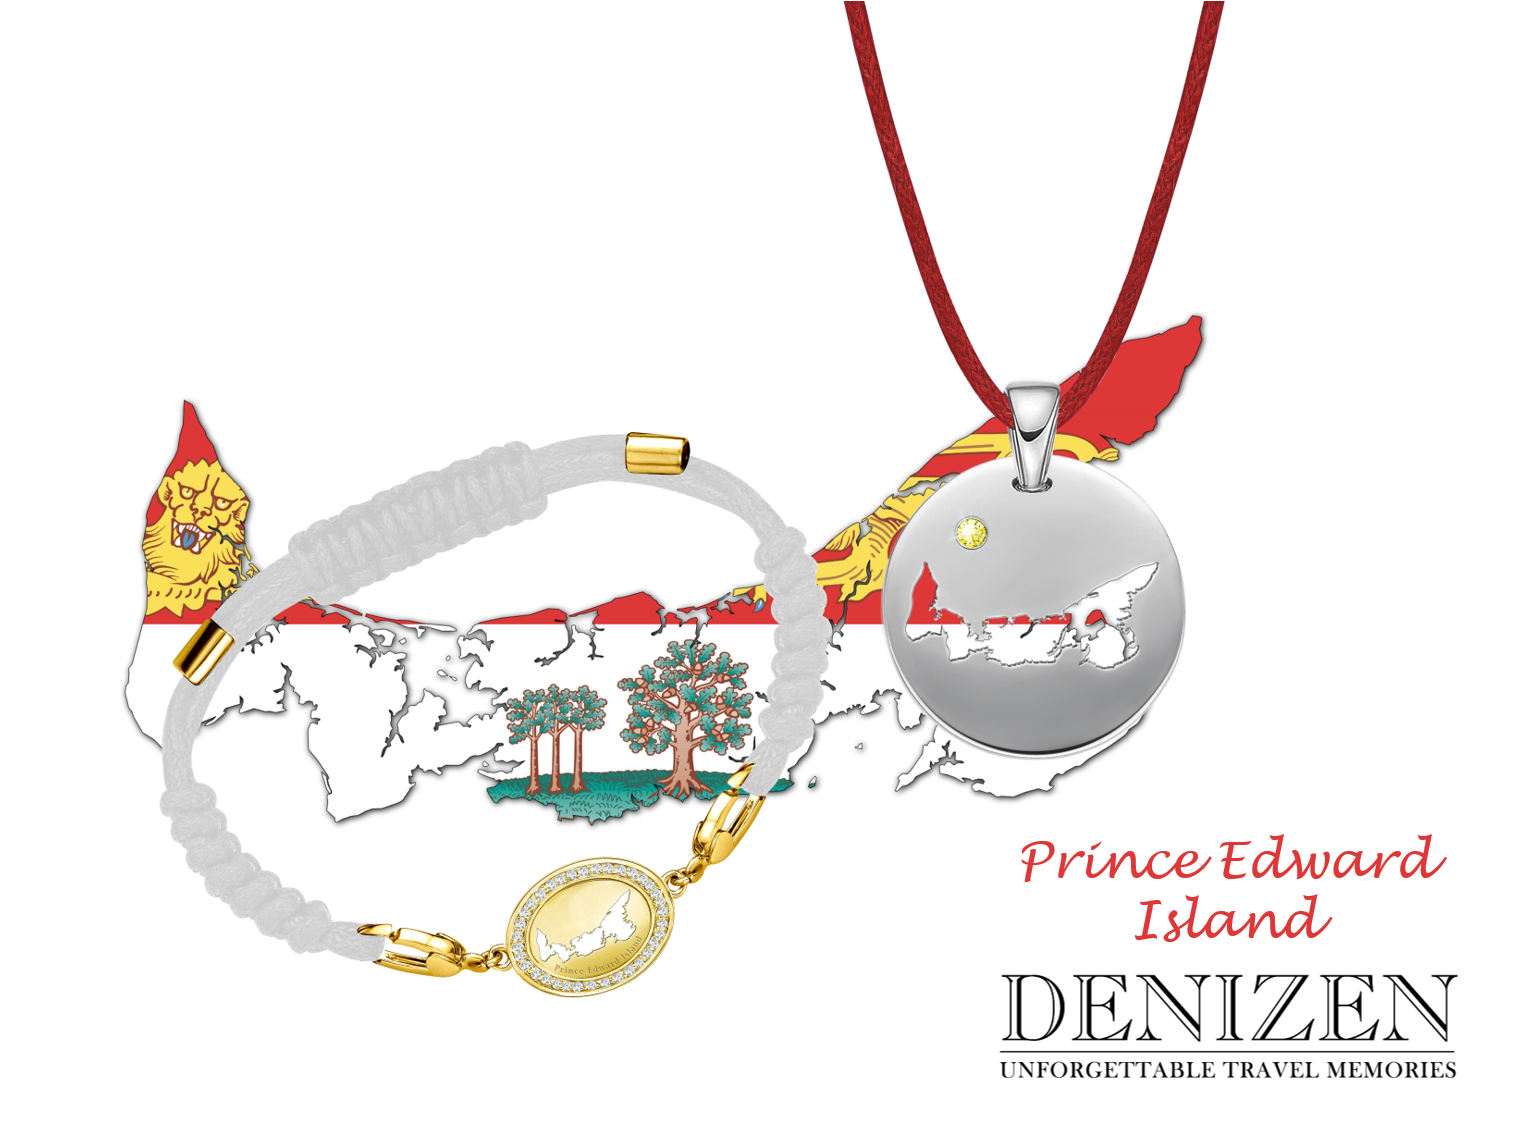 denizen bracelet and necklace of Prince Edward Island